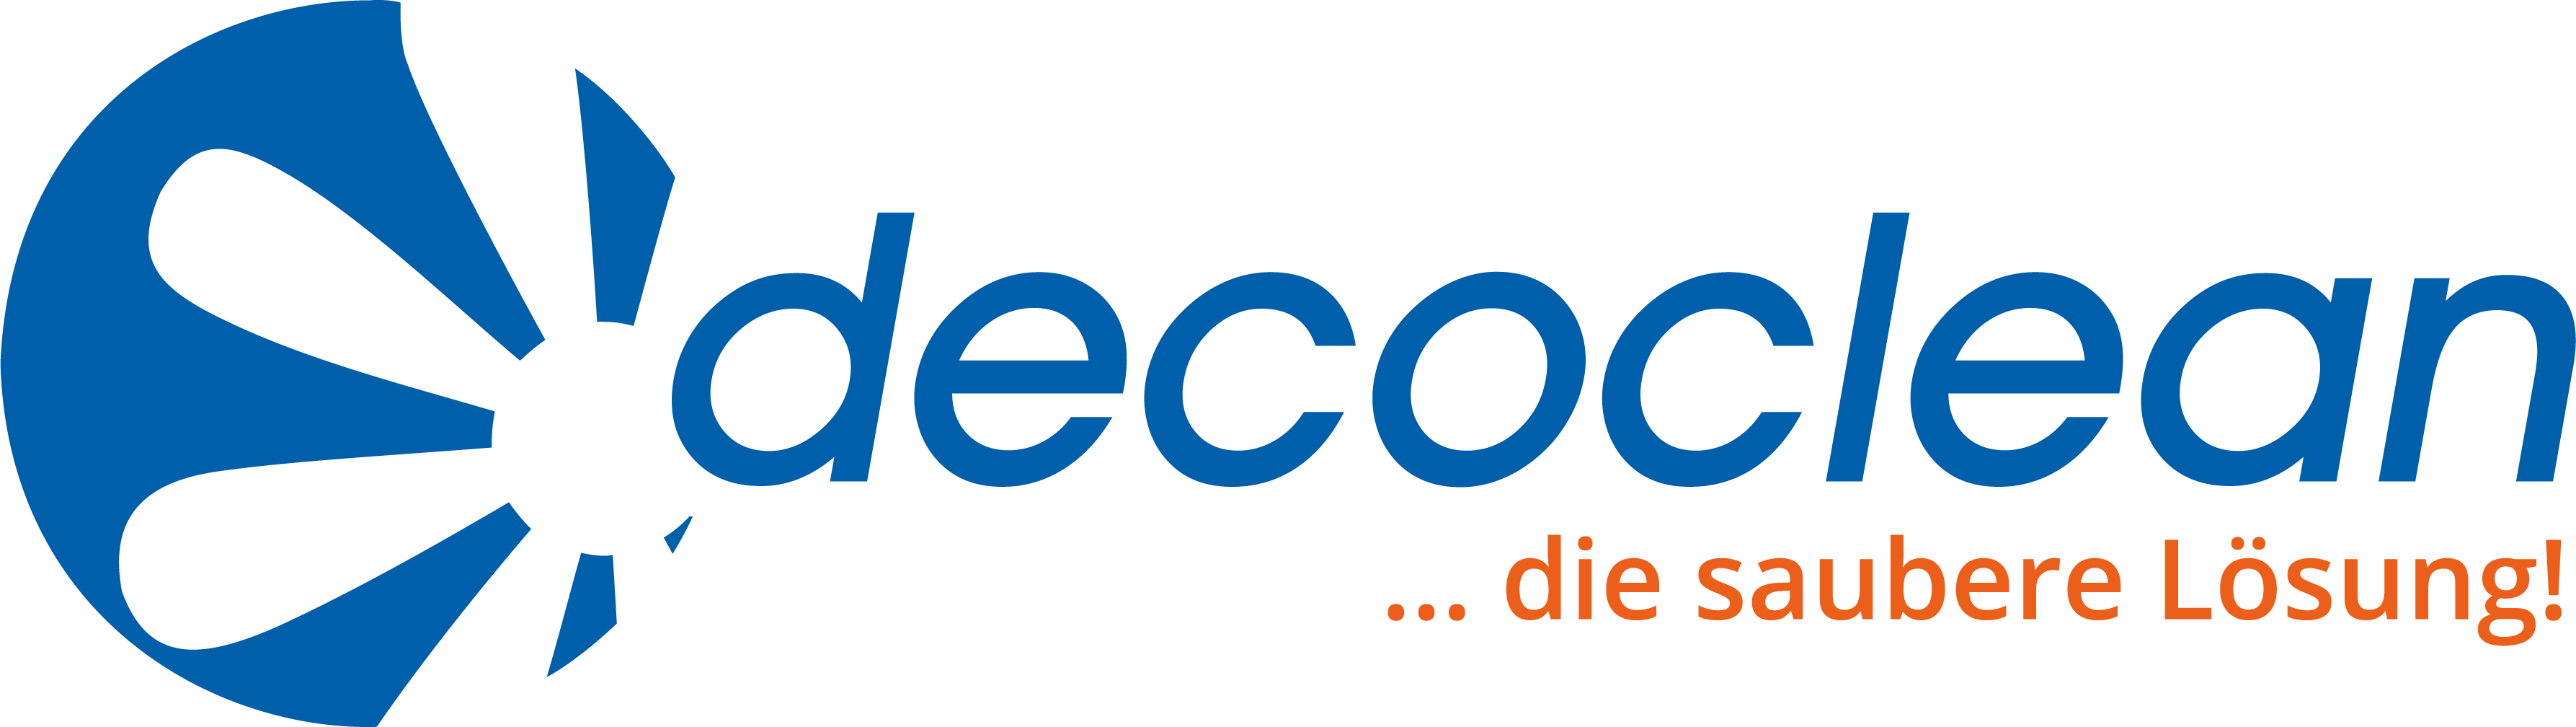 decoclean GmbH & Co. KG